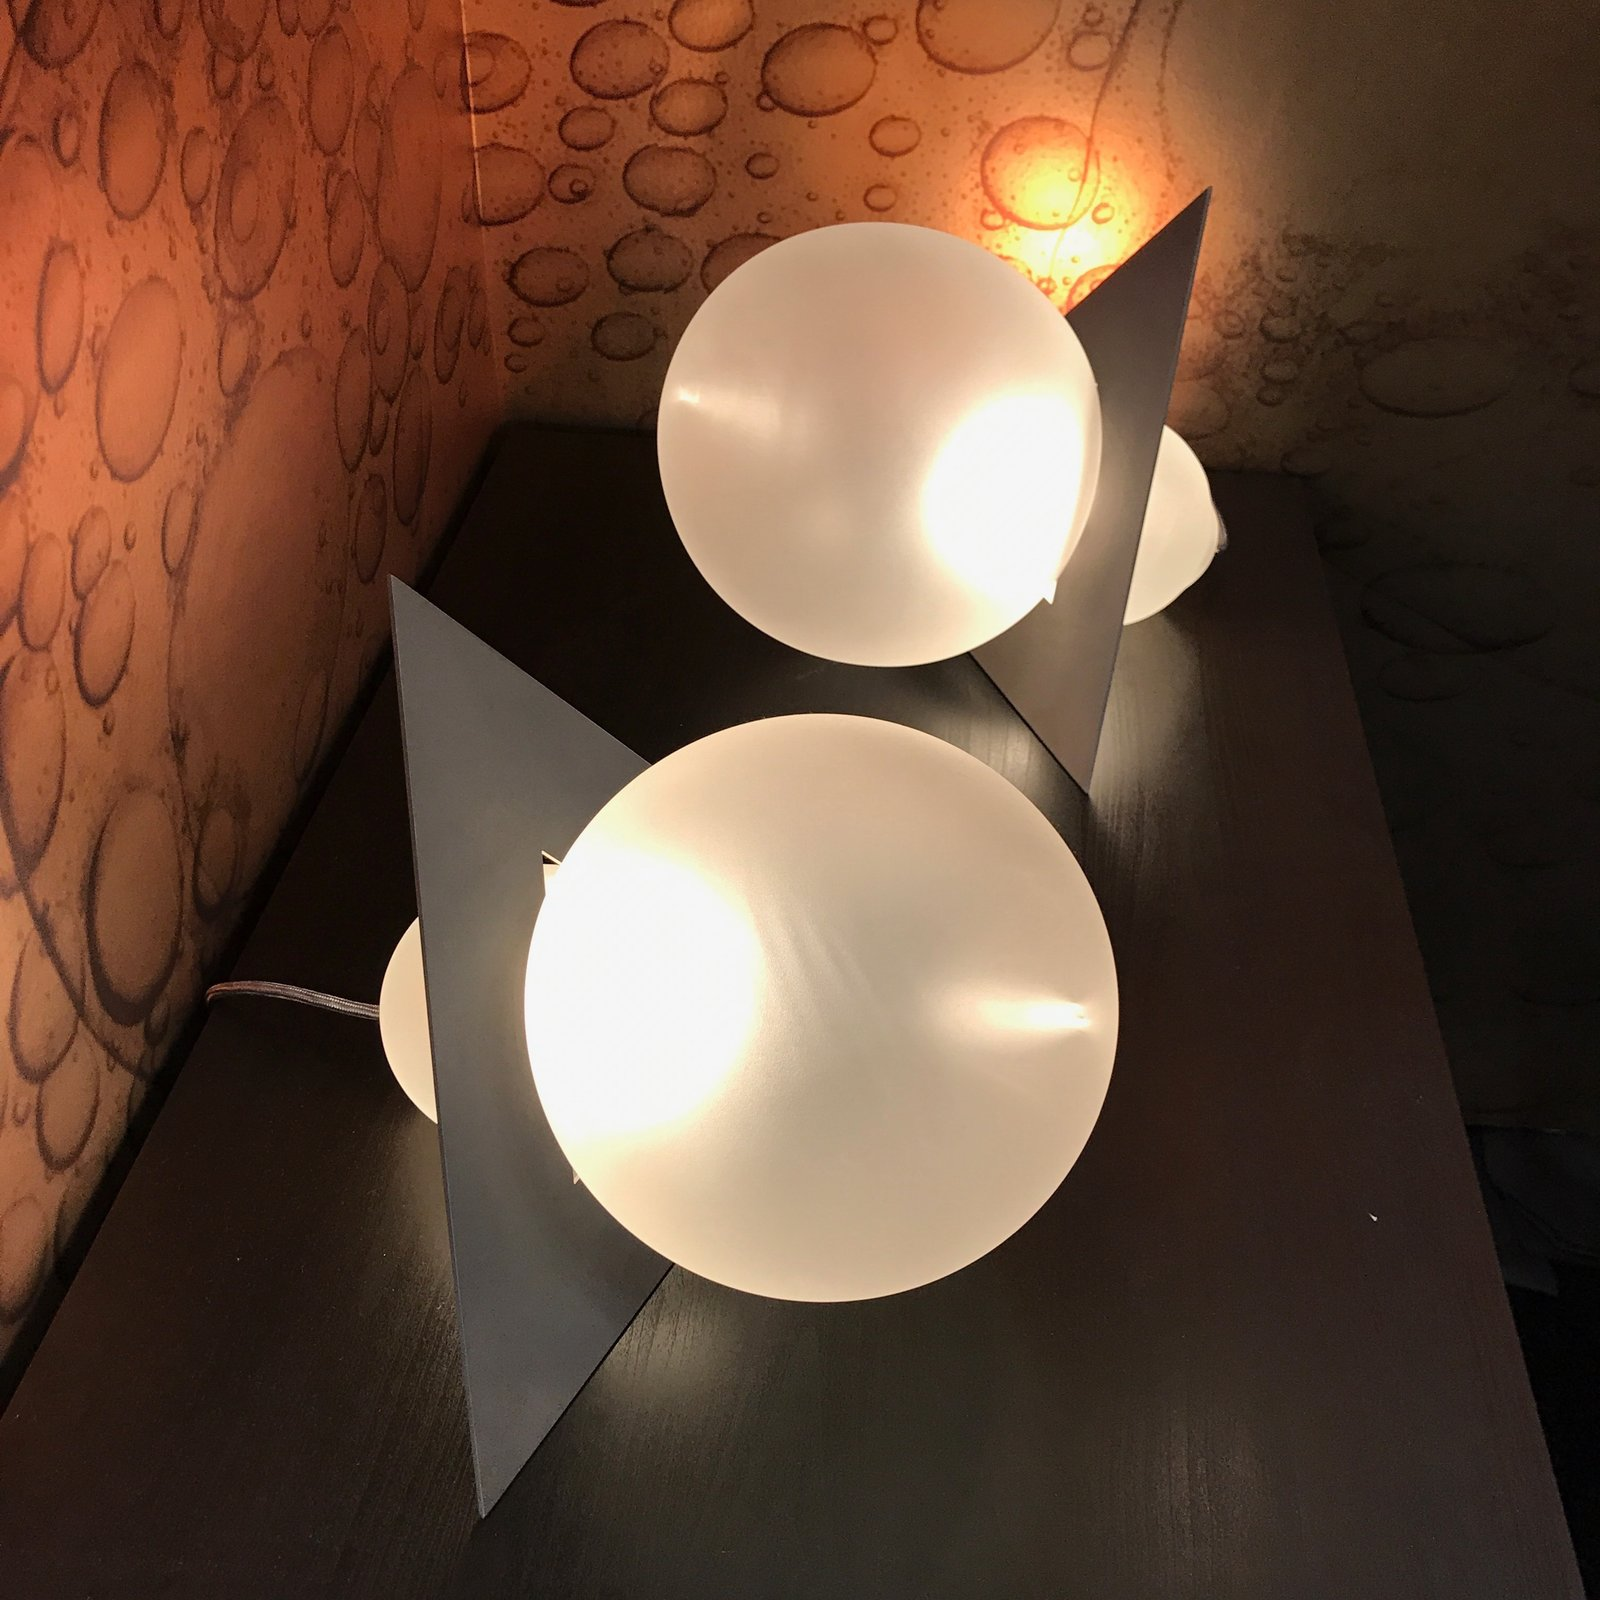 Portland-based glassblowing masters Esque partnered with designer Harry Allen on Liaison, lighting pieces made of sand-blasted glass and stainless steel. The wall covering in the background is by Flavor Paper, frequent collaborators of Esque's.